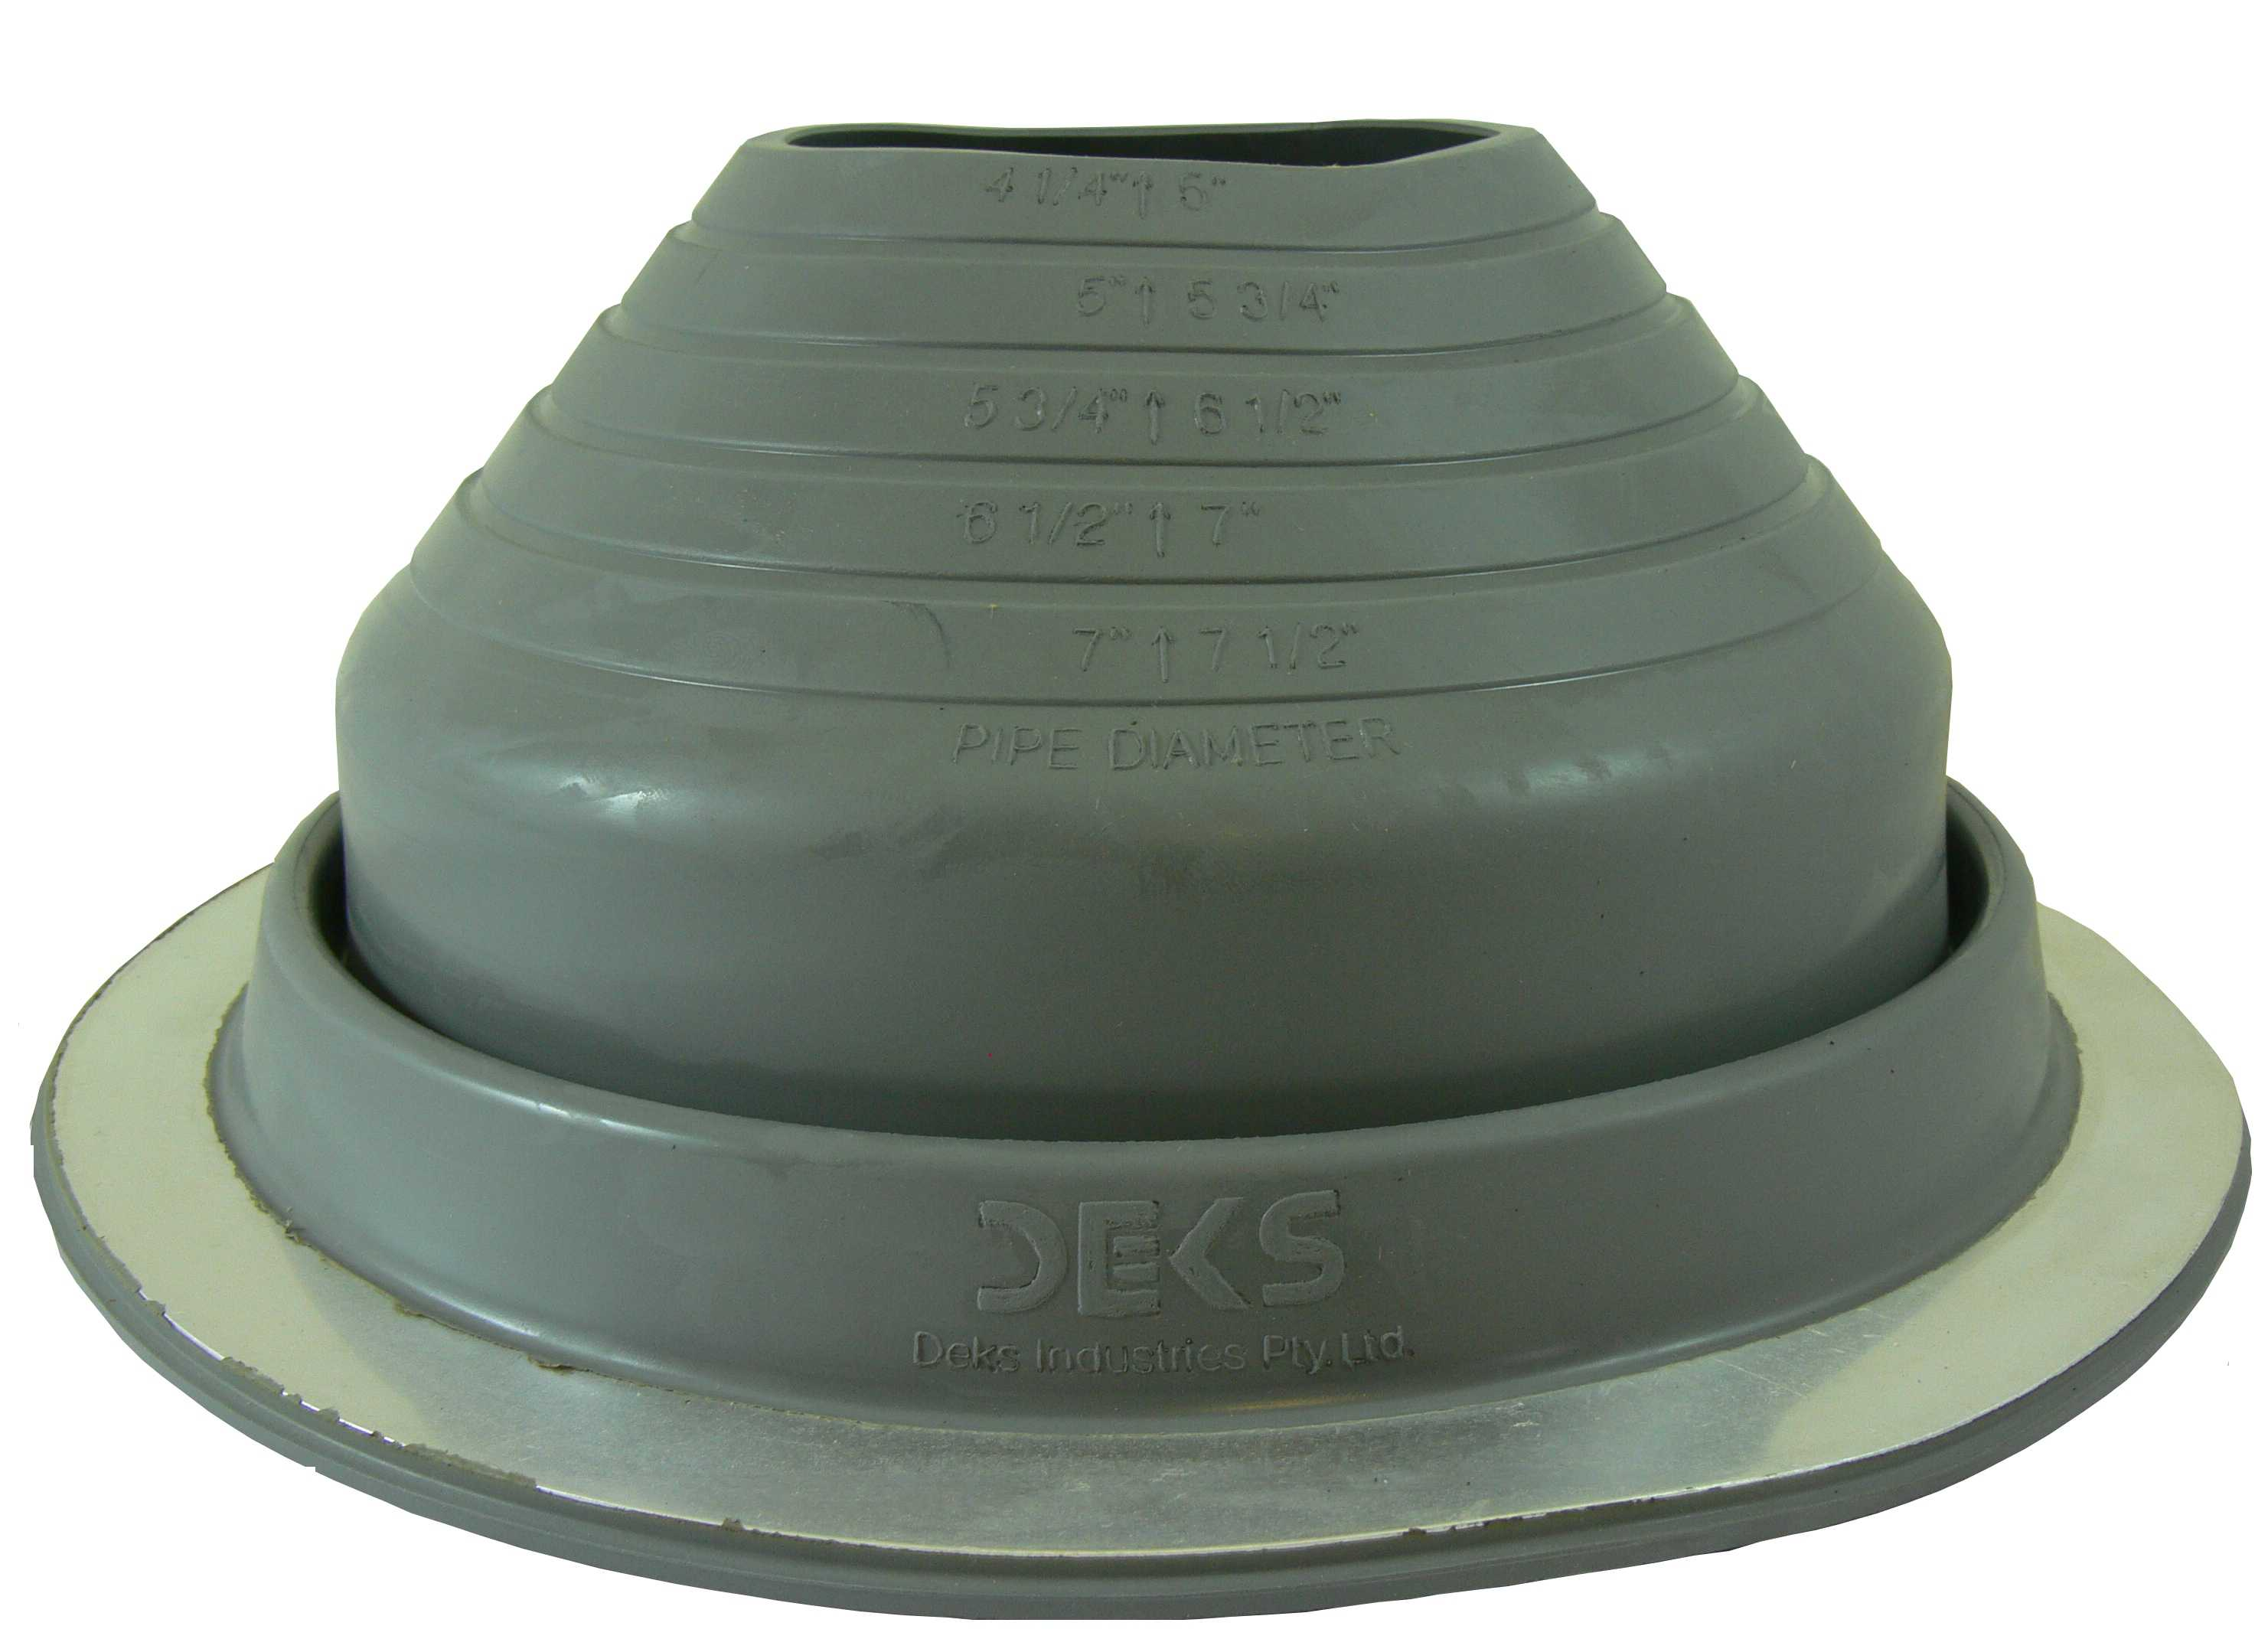 DEKTITE ROUND BASE METAL ROOFING PIPE FLASHING BOOT: #5 GRAY EPDM Flexible Pipe Flashing Dektite (for OD pipe sizes 4' - 7') - Metal Roof Jack Pipe Boot - Metal Roofing Pipe Flashing - Deks Dektite